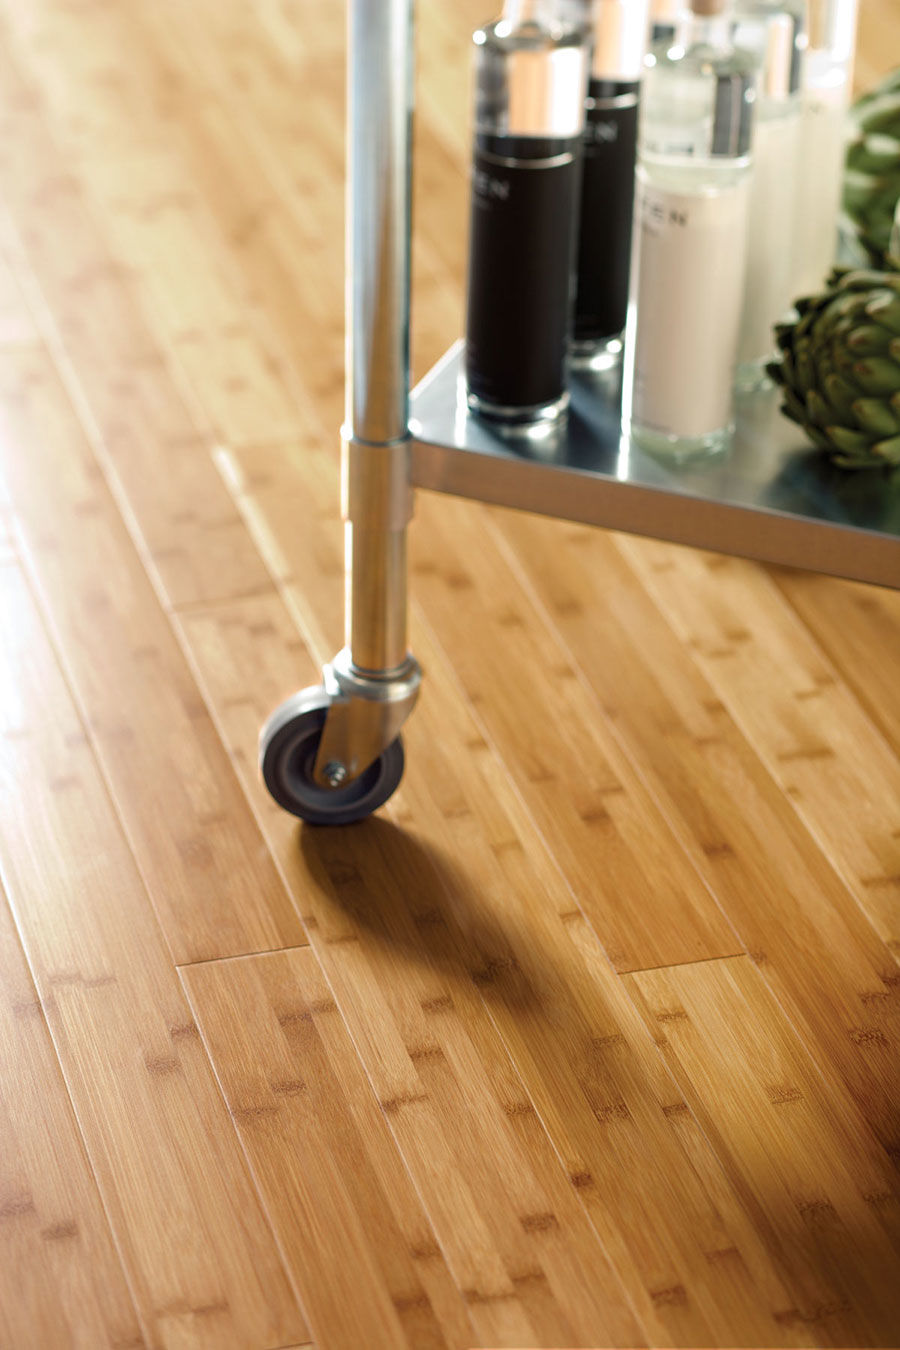 Sustainable Bamboo Flooring From Teragren Signature Naturals, Unfinished  Solid Bamboo